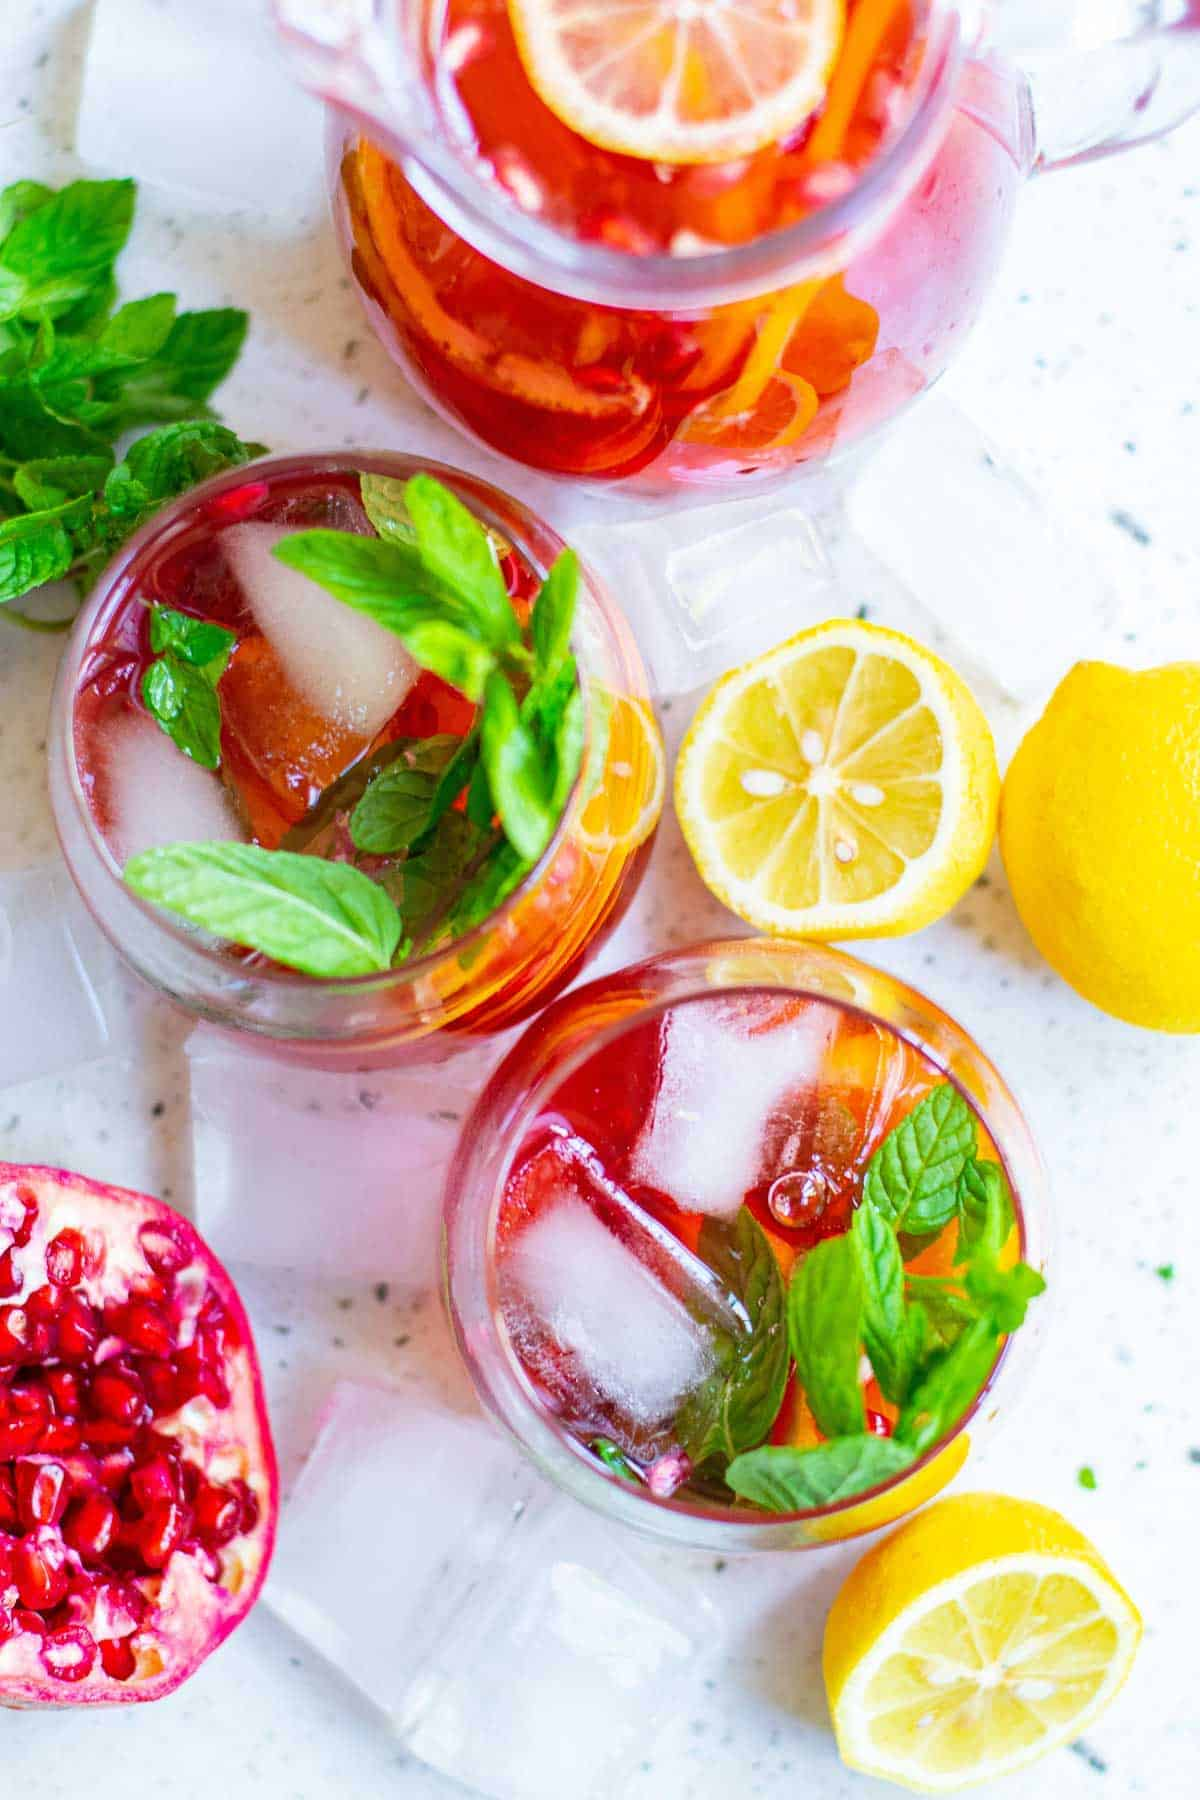 Overhead view of two glasses of sparkling pomegranate punch, garnished with fresh pomegranate and mint leaves.